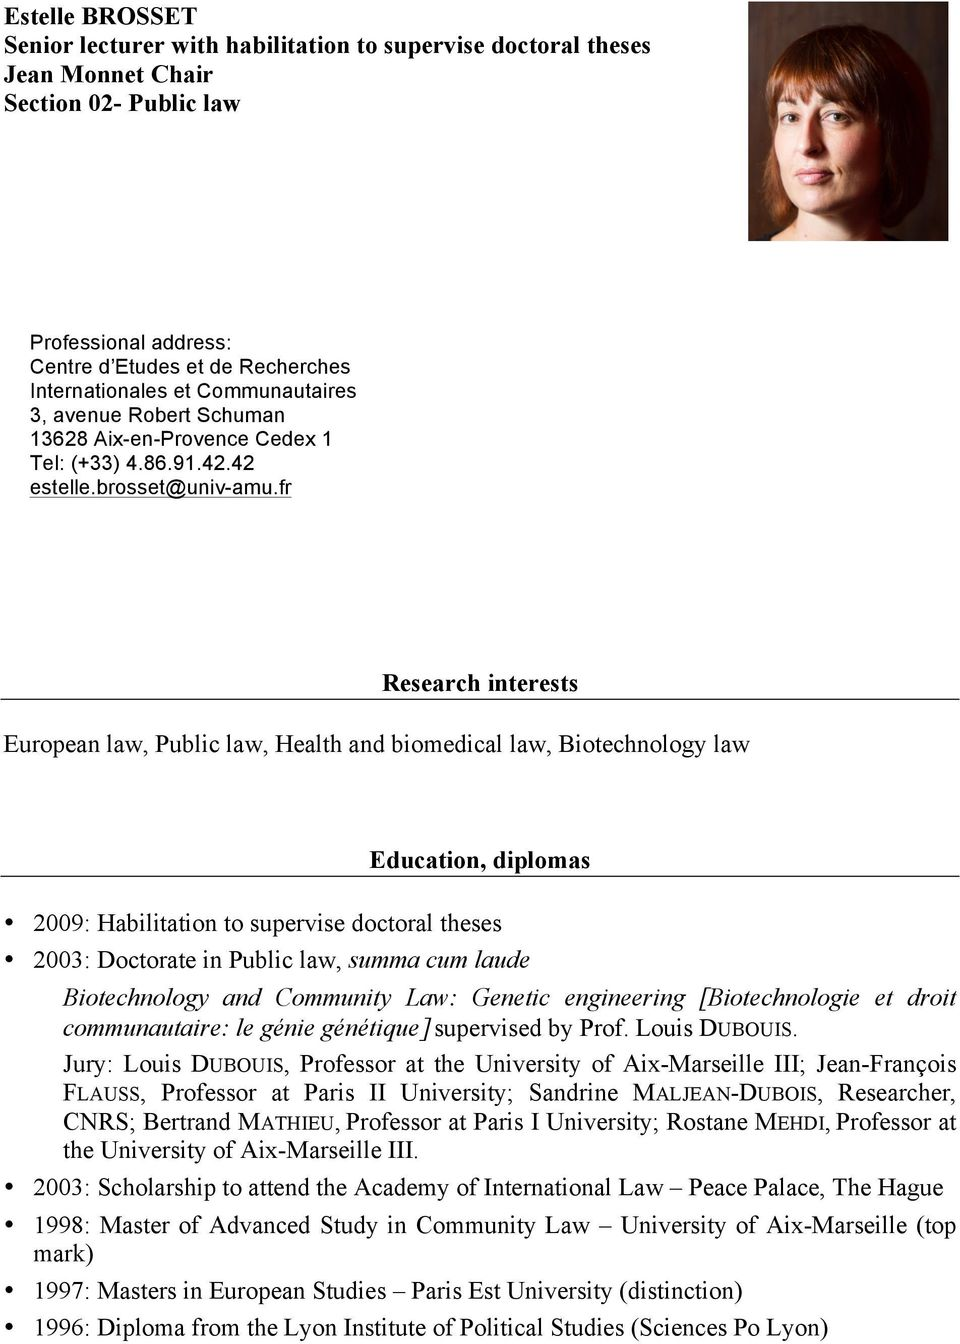 fr Research interests European law, Public law, Health and biomedical law, Biotechnology law Education, diplomas 2009: Habilitation to supervise doctoral theses 2003: Doctorate in Public law, summa